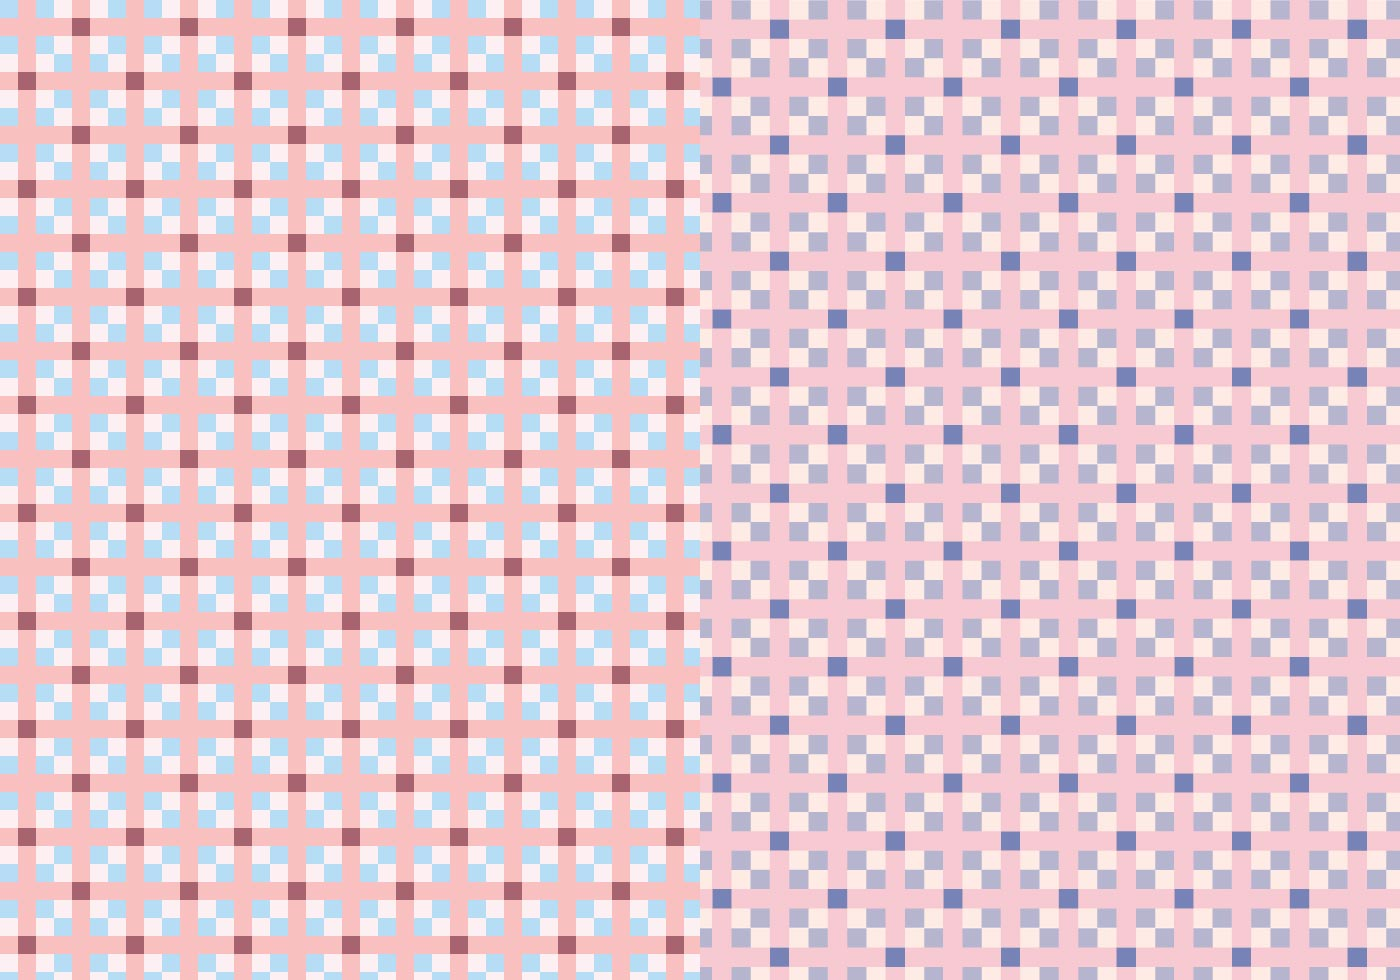 Birthday Background Pink Pink Square Pattern - Download Free Vector Art, Stock